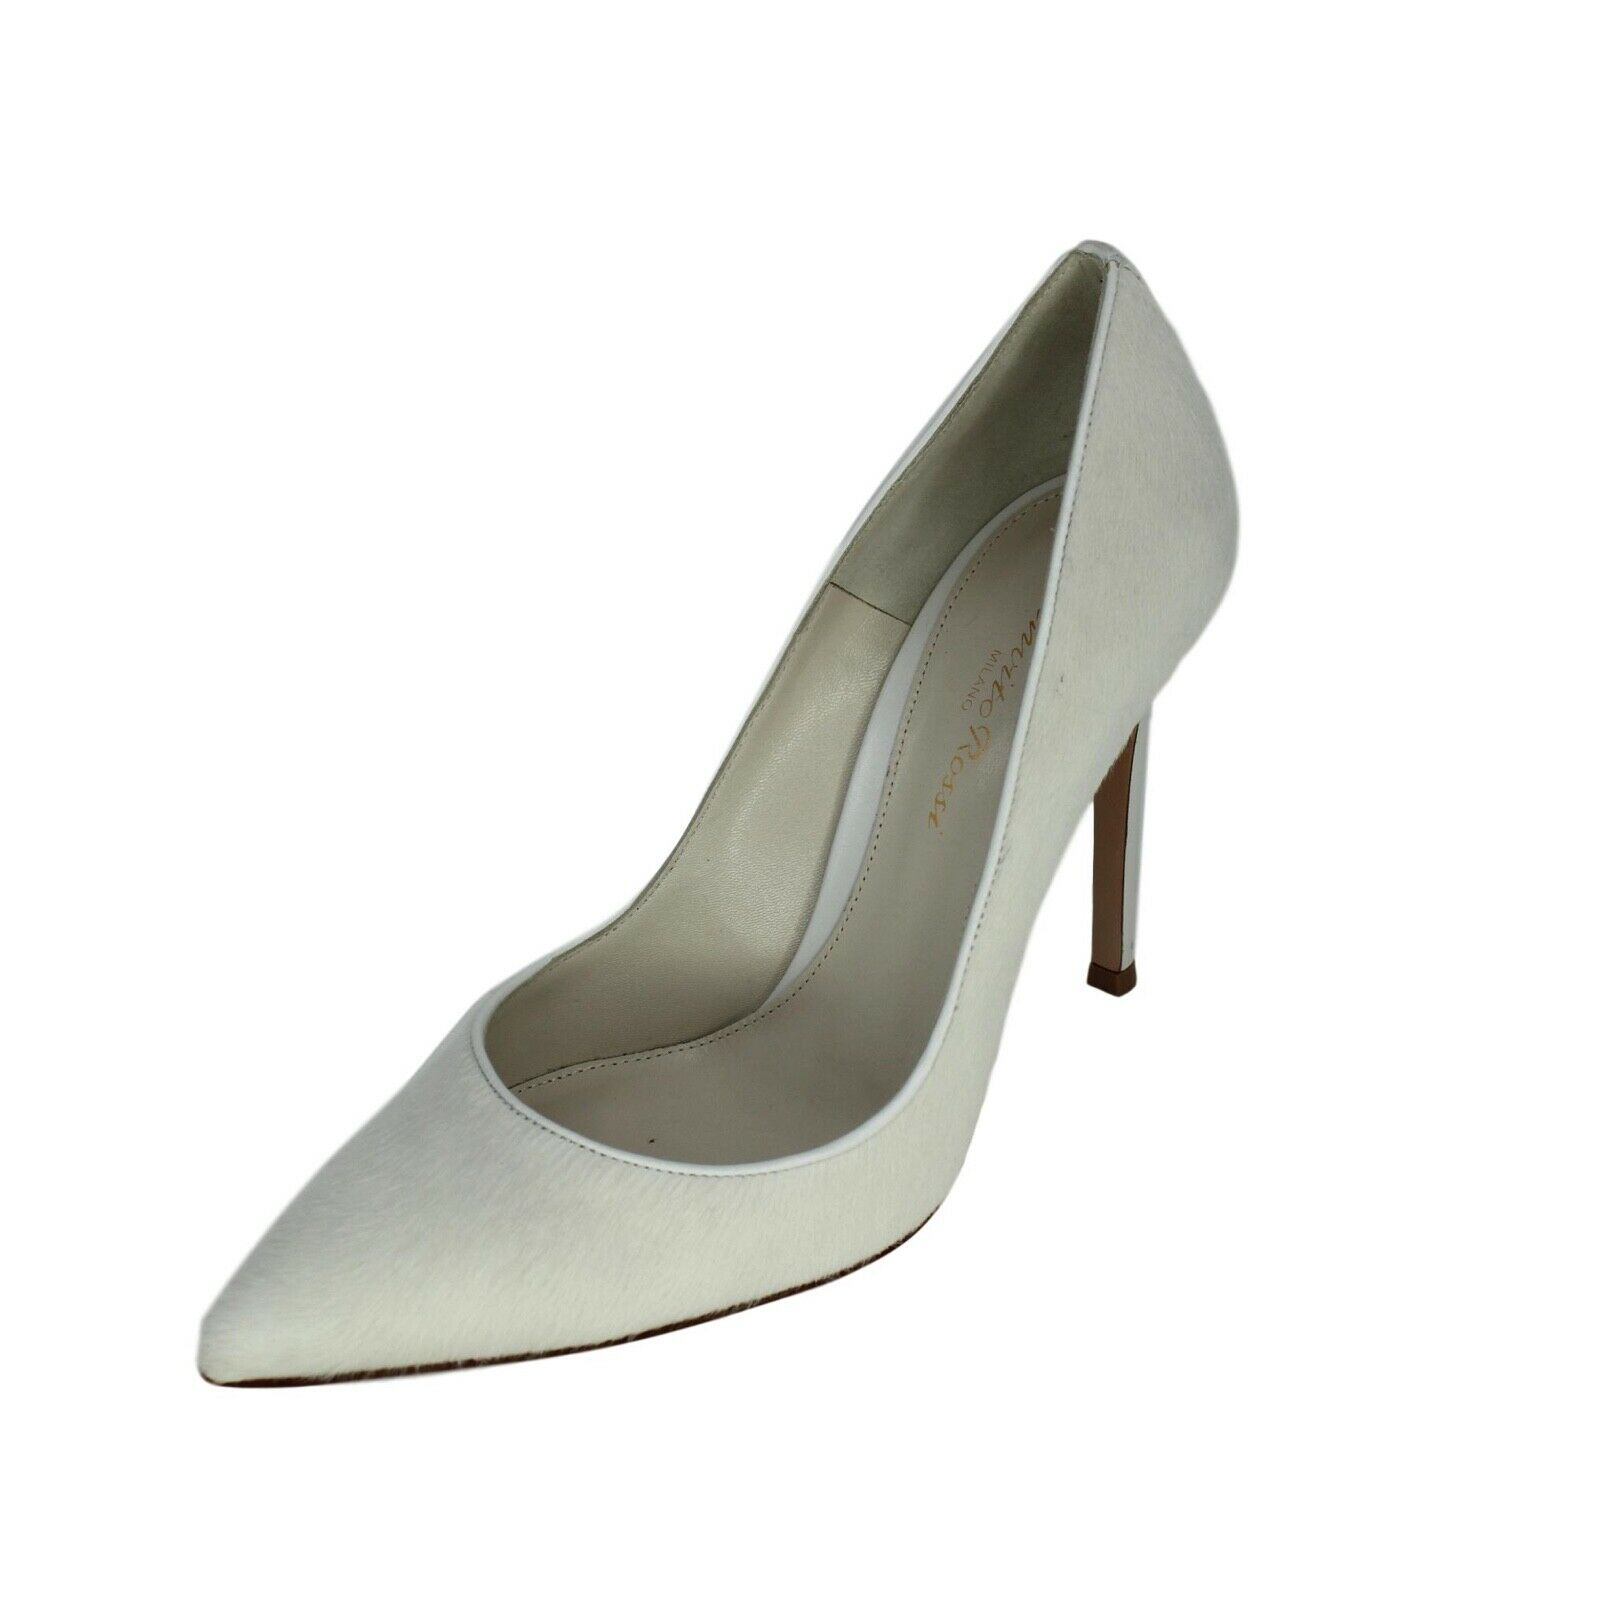 GIANVITO ROSSI White Pony Hair Point-Toe Pumps - US 6.5 - Retail  795